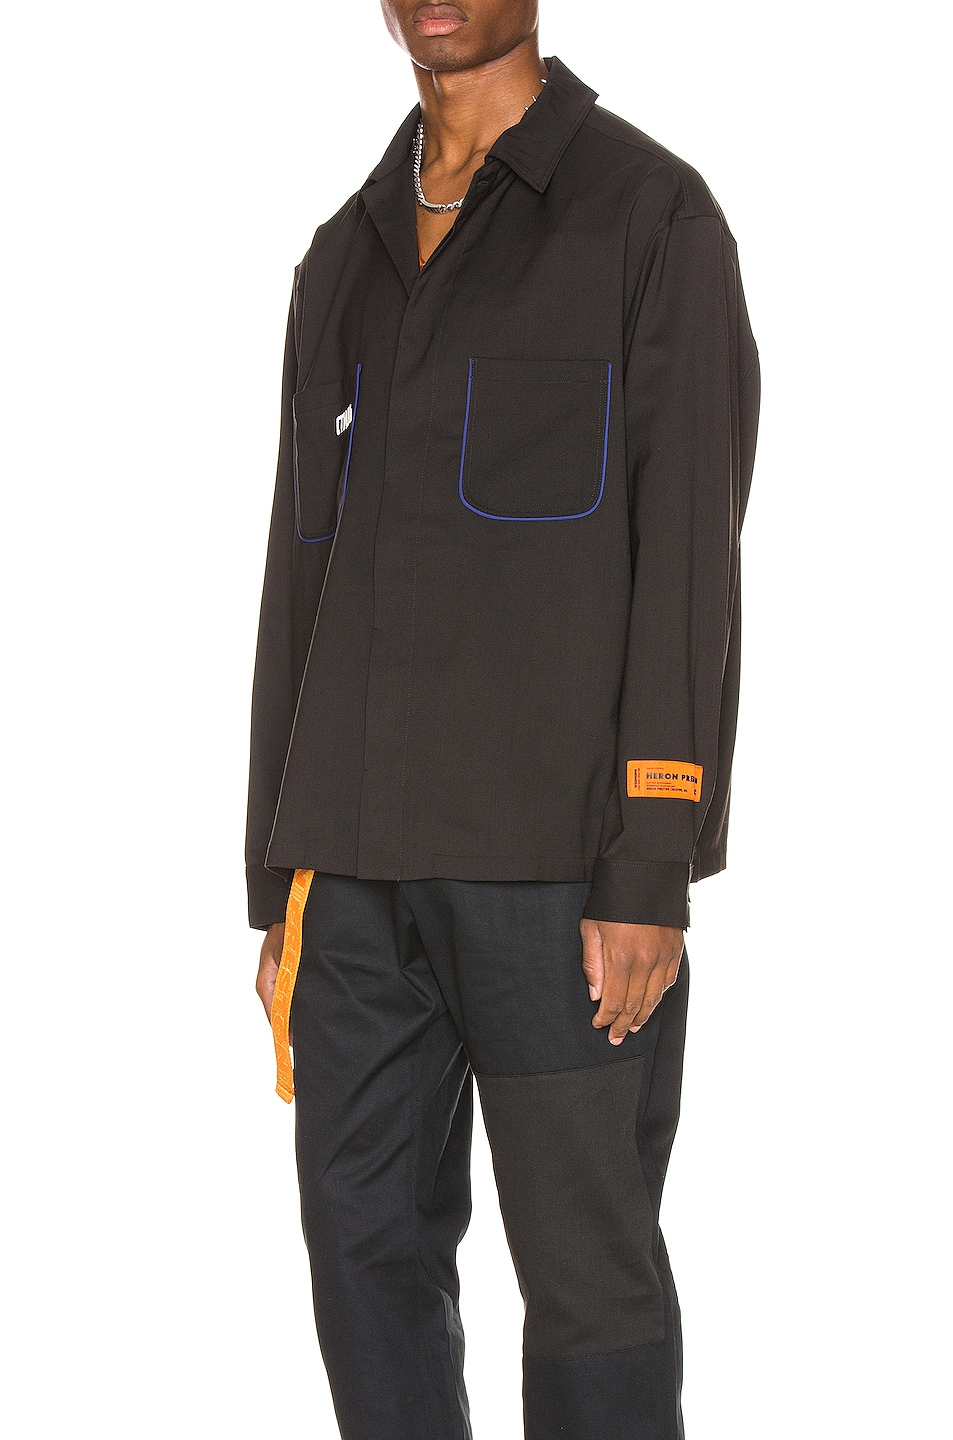 Image 3 of Heron Preston CTNMB Worker Shirt in Black